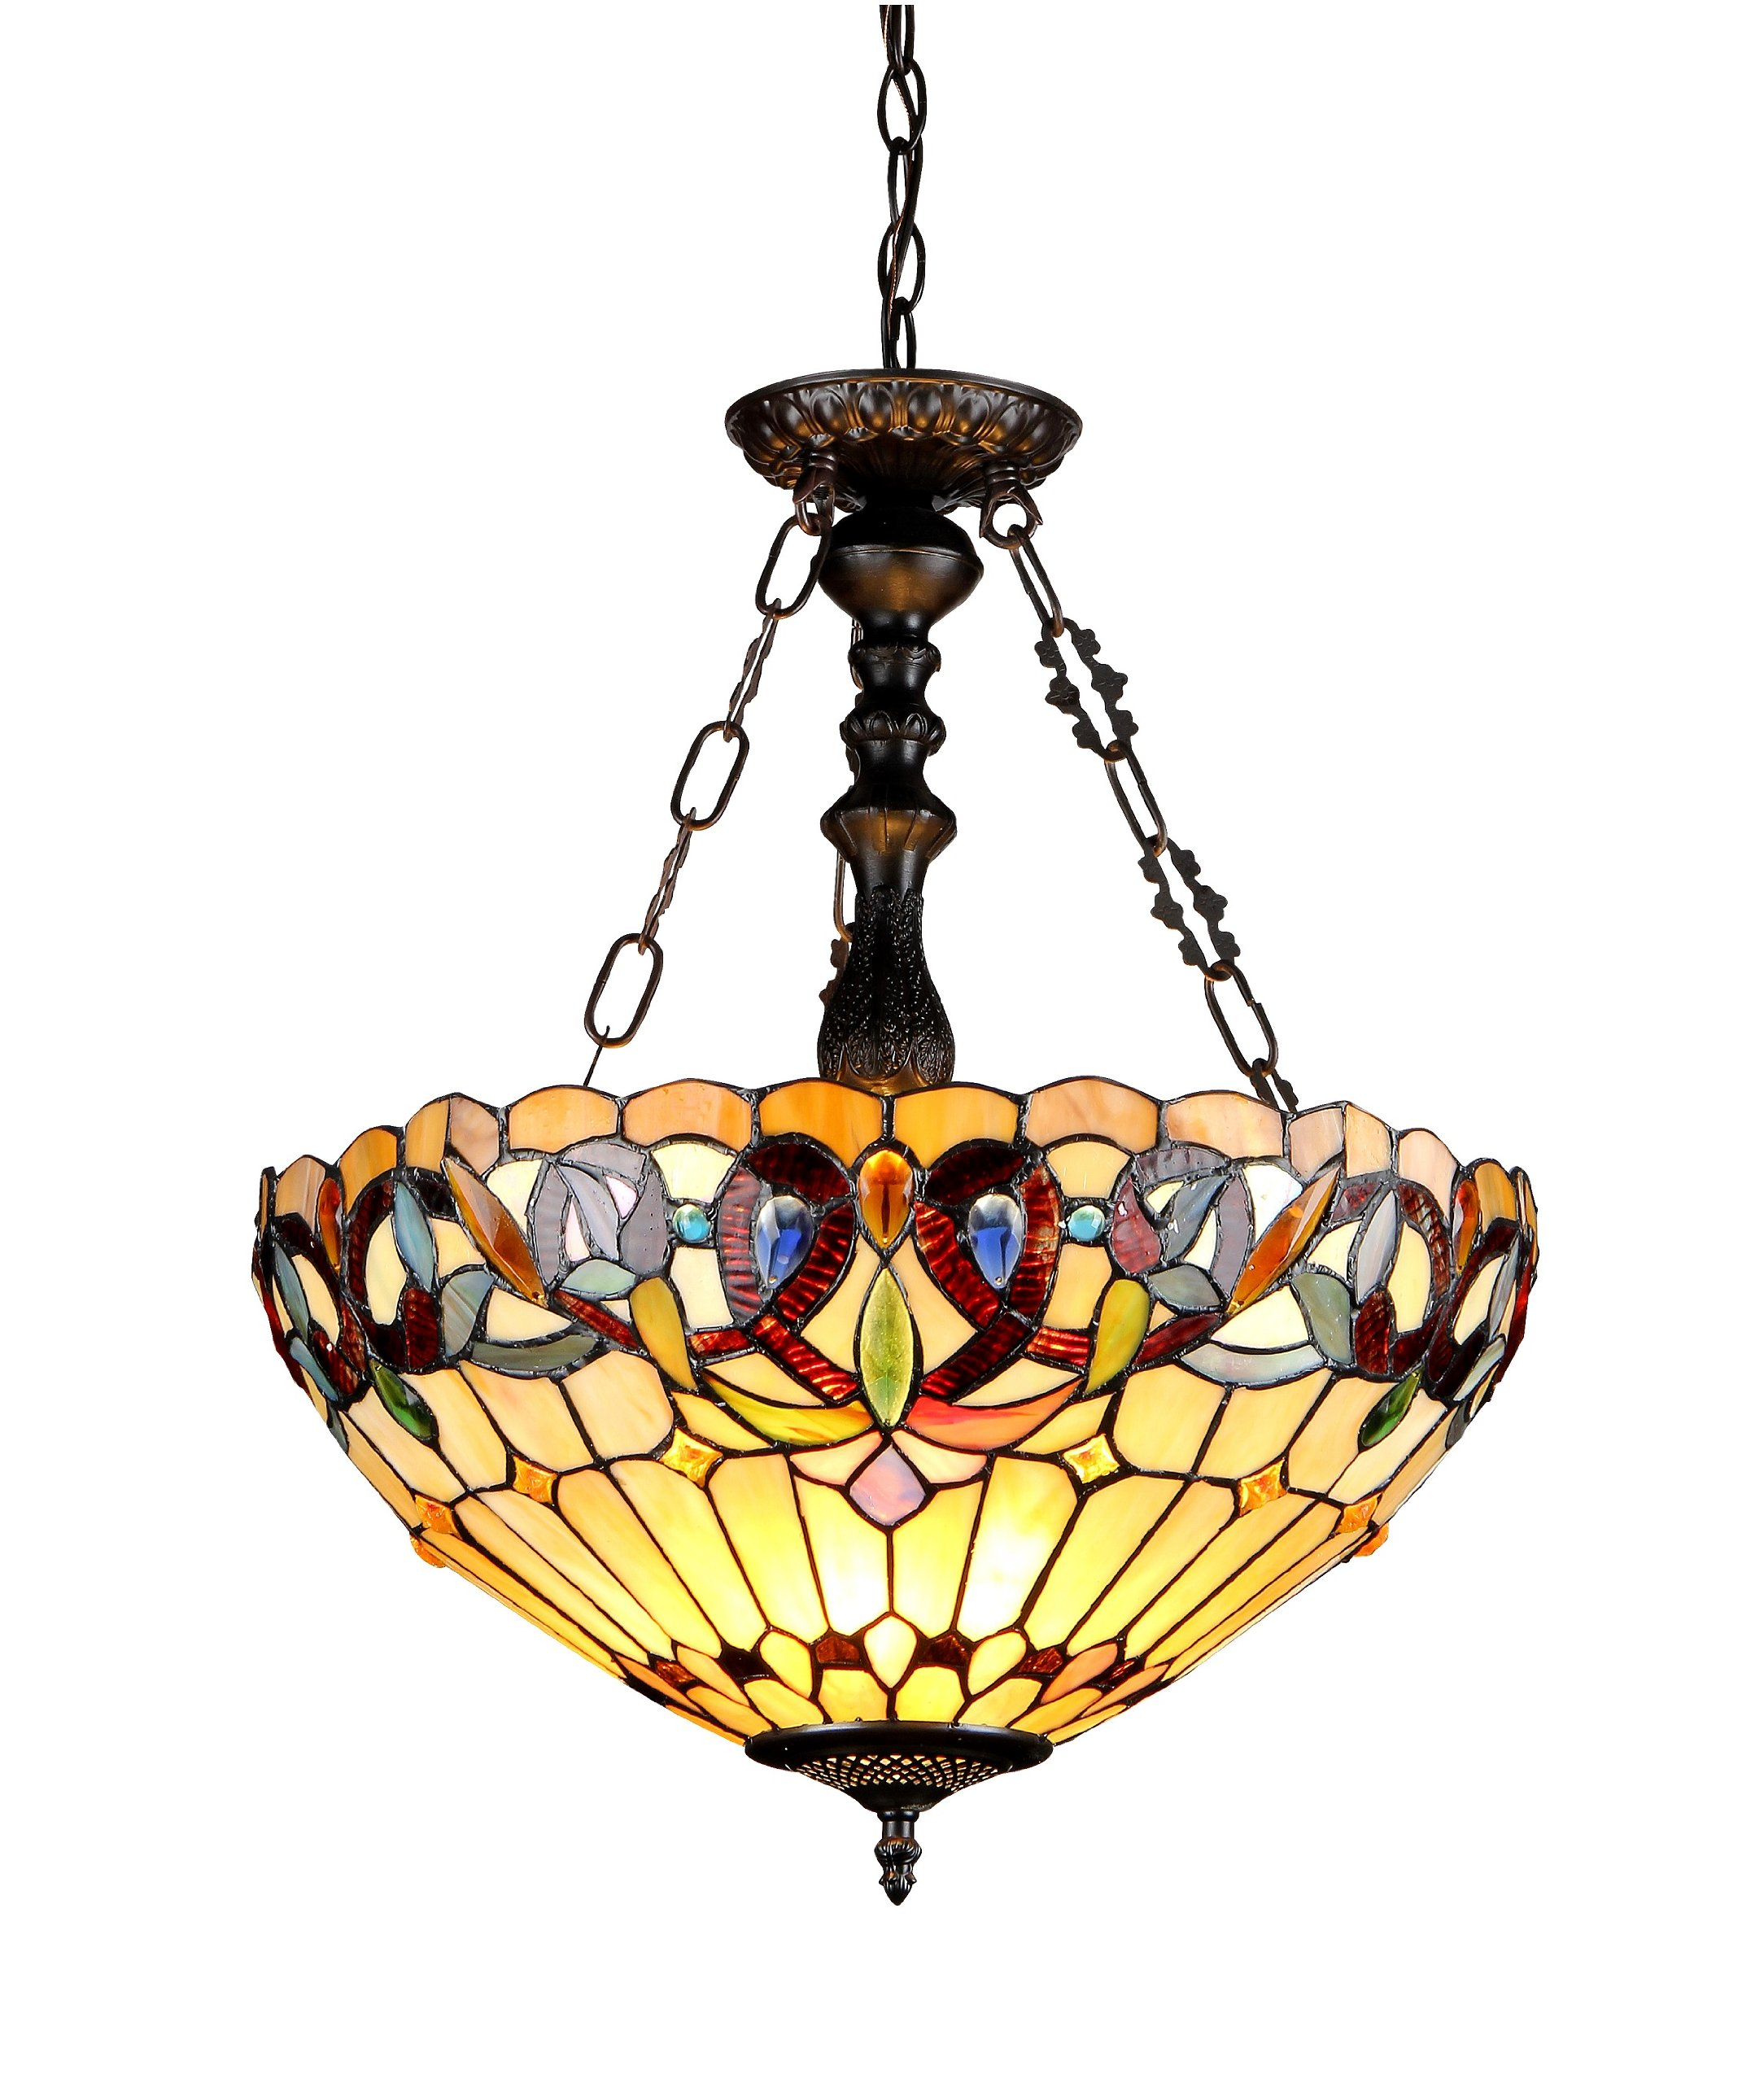 Chloe Lighting CH33353VR18-UH3 Serenity Tiffany-Style Victorian 3-Light Inverted Ceiling Pendant with 18-Inch Shade